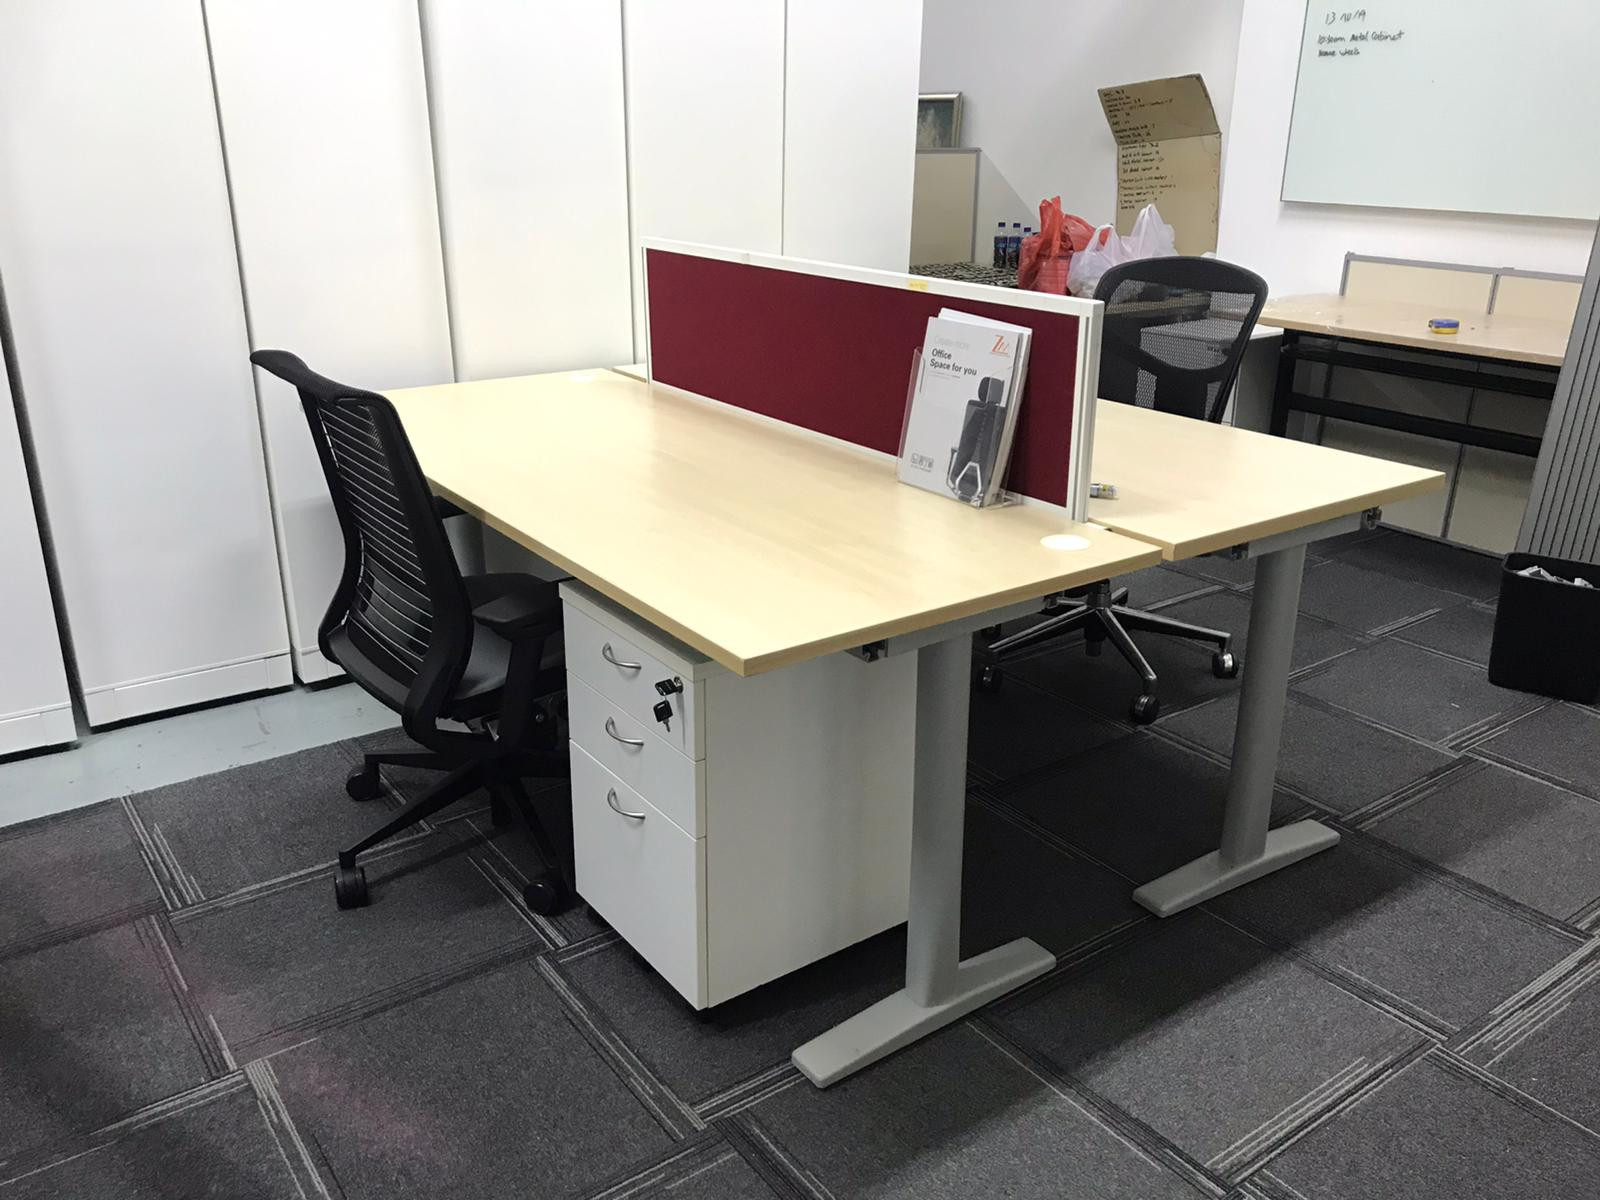 Herman Miller Office Table - Combined Herman Miller Office Table - Office Desk - Office Workstation - Office Workspace - Office Furniture - Wooden Table - Corporate - NewStar Furniture Collection | Lazada Singapore